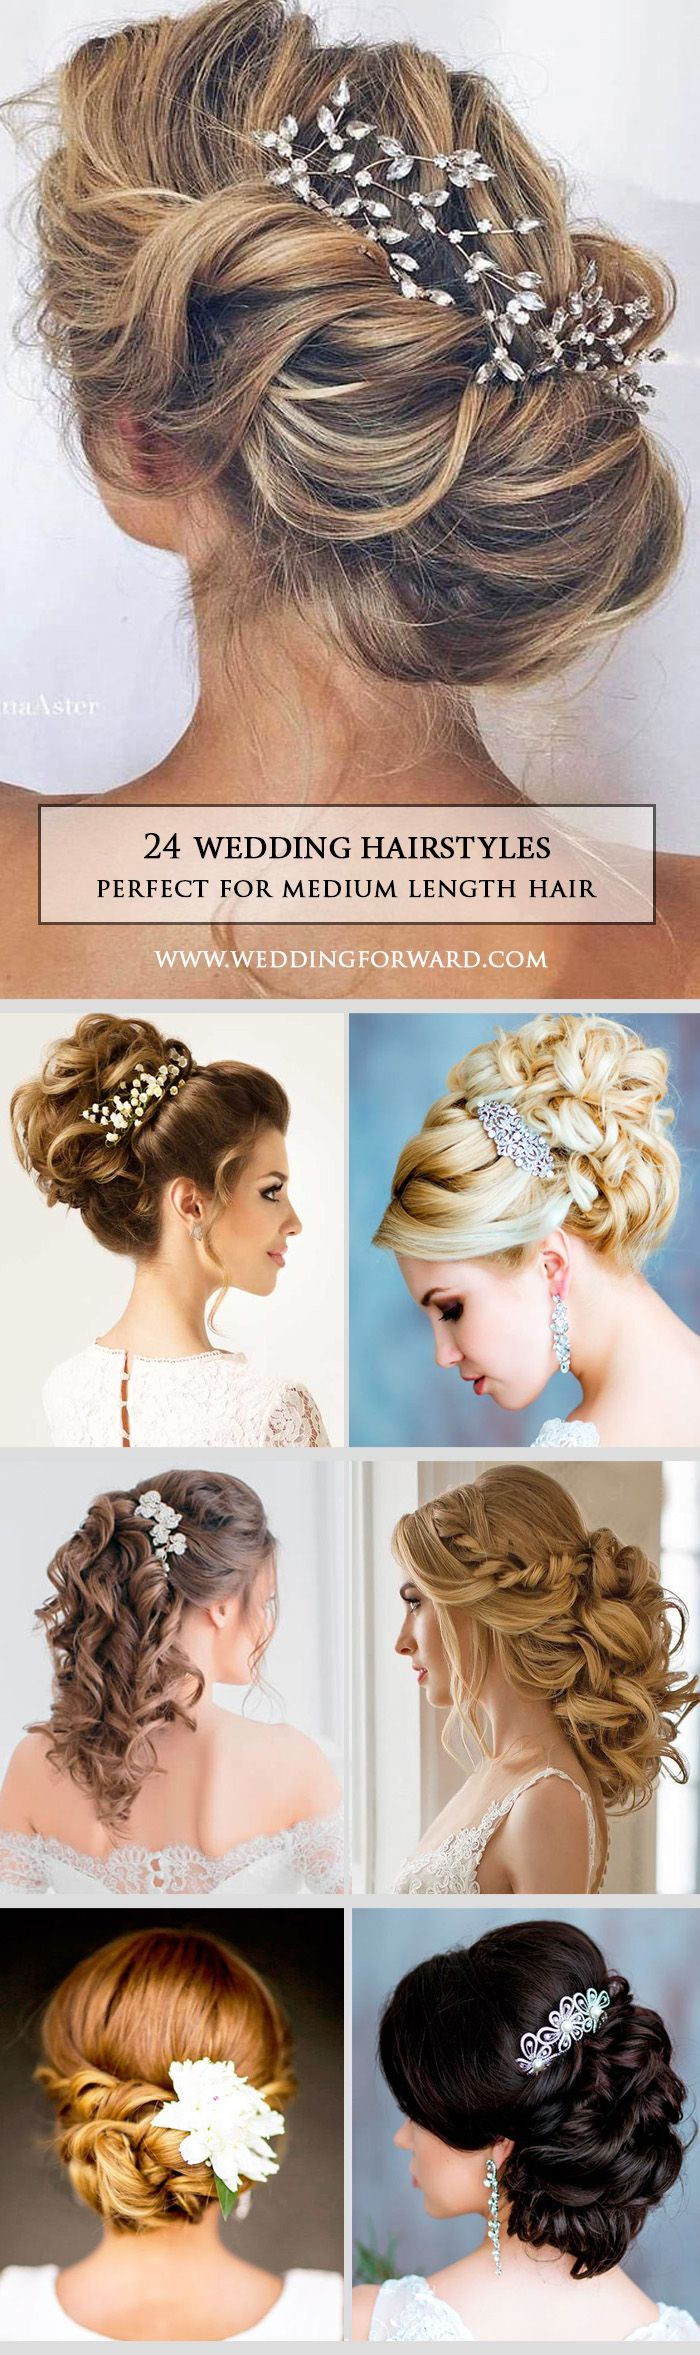 24 Timeless Wedding Hairstyles For Medium Length Hair ❤  Do you have the quest...